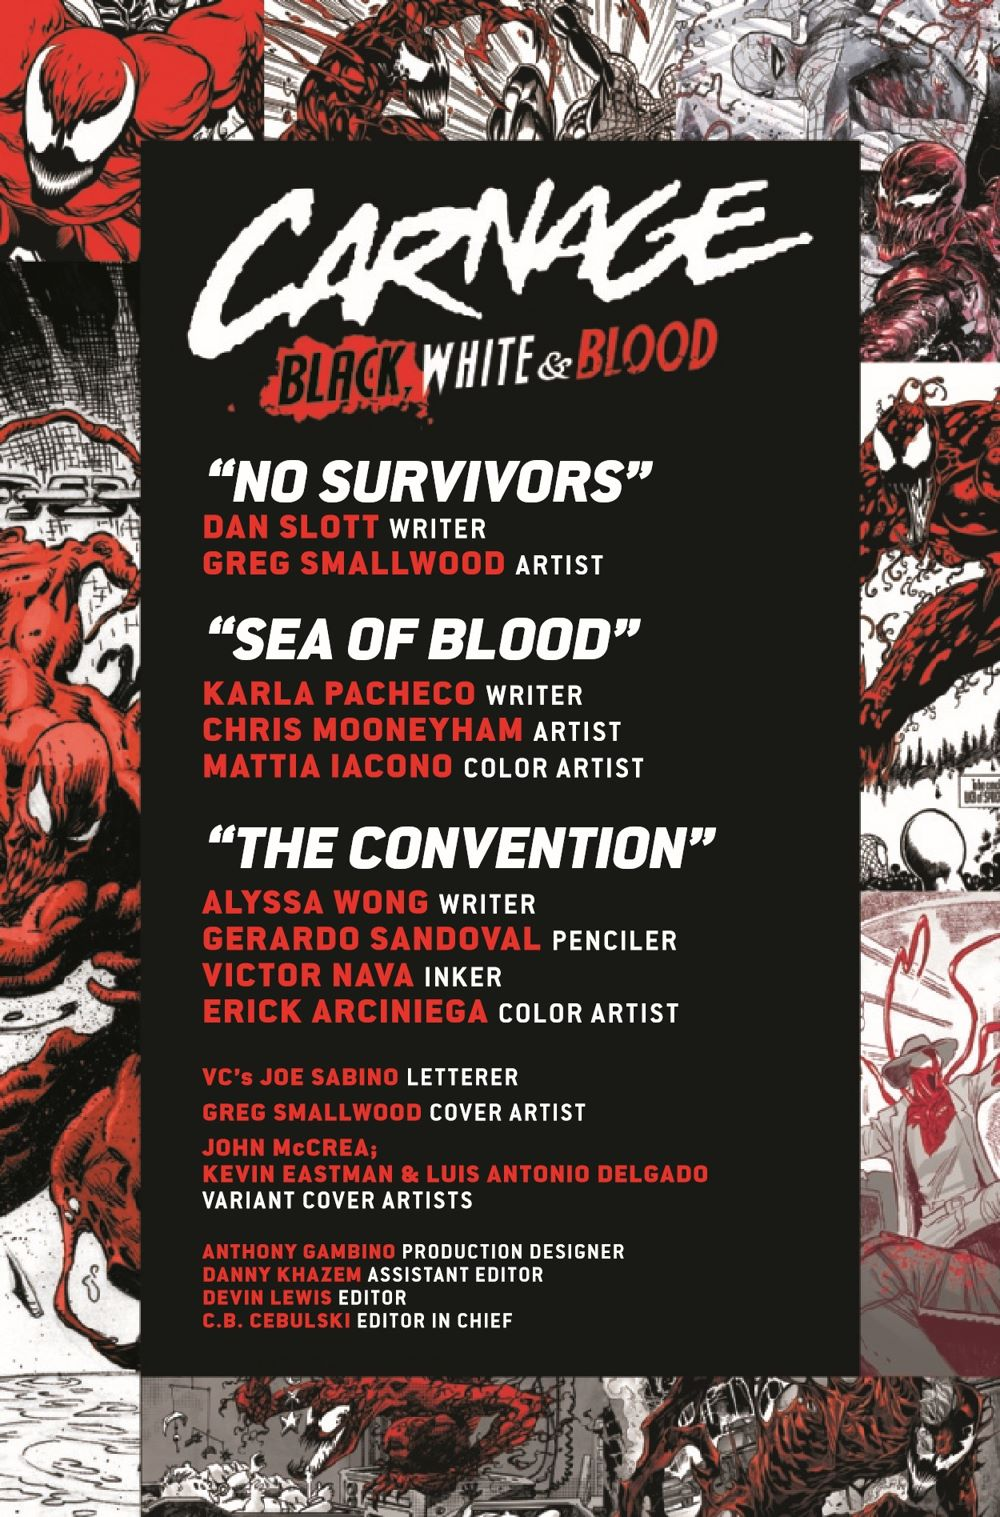 CARNBLKWHBL2021003_Preview-2 ComicList Previews: CARNAGE BLACK WHITE AND BLOOD #3 (OF 4)